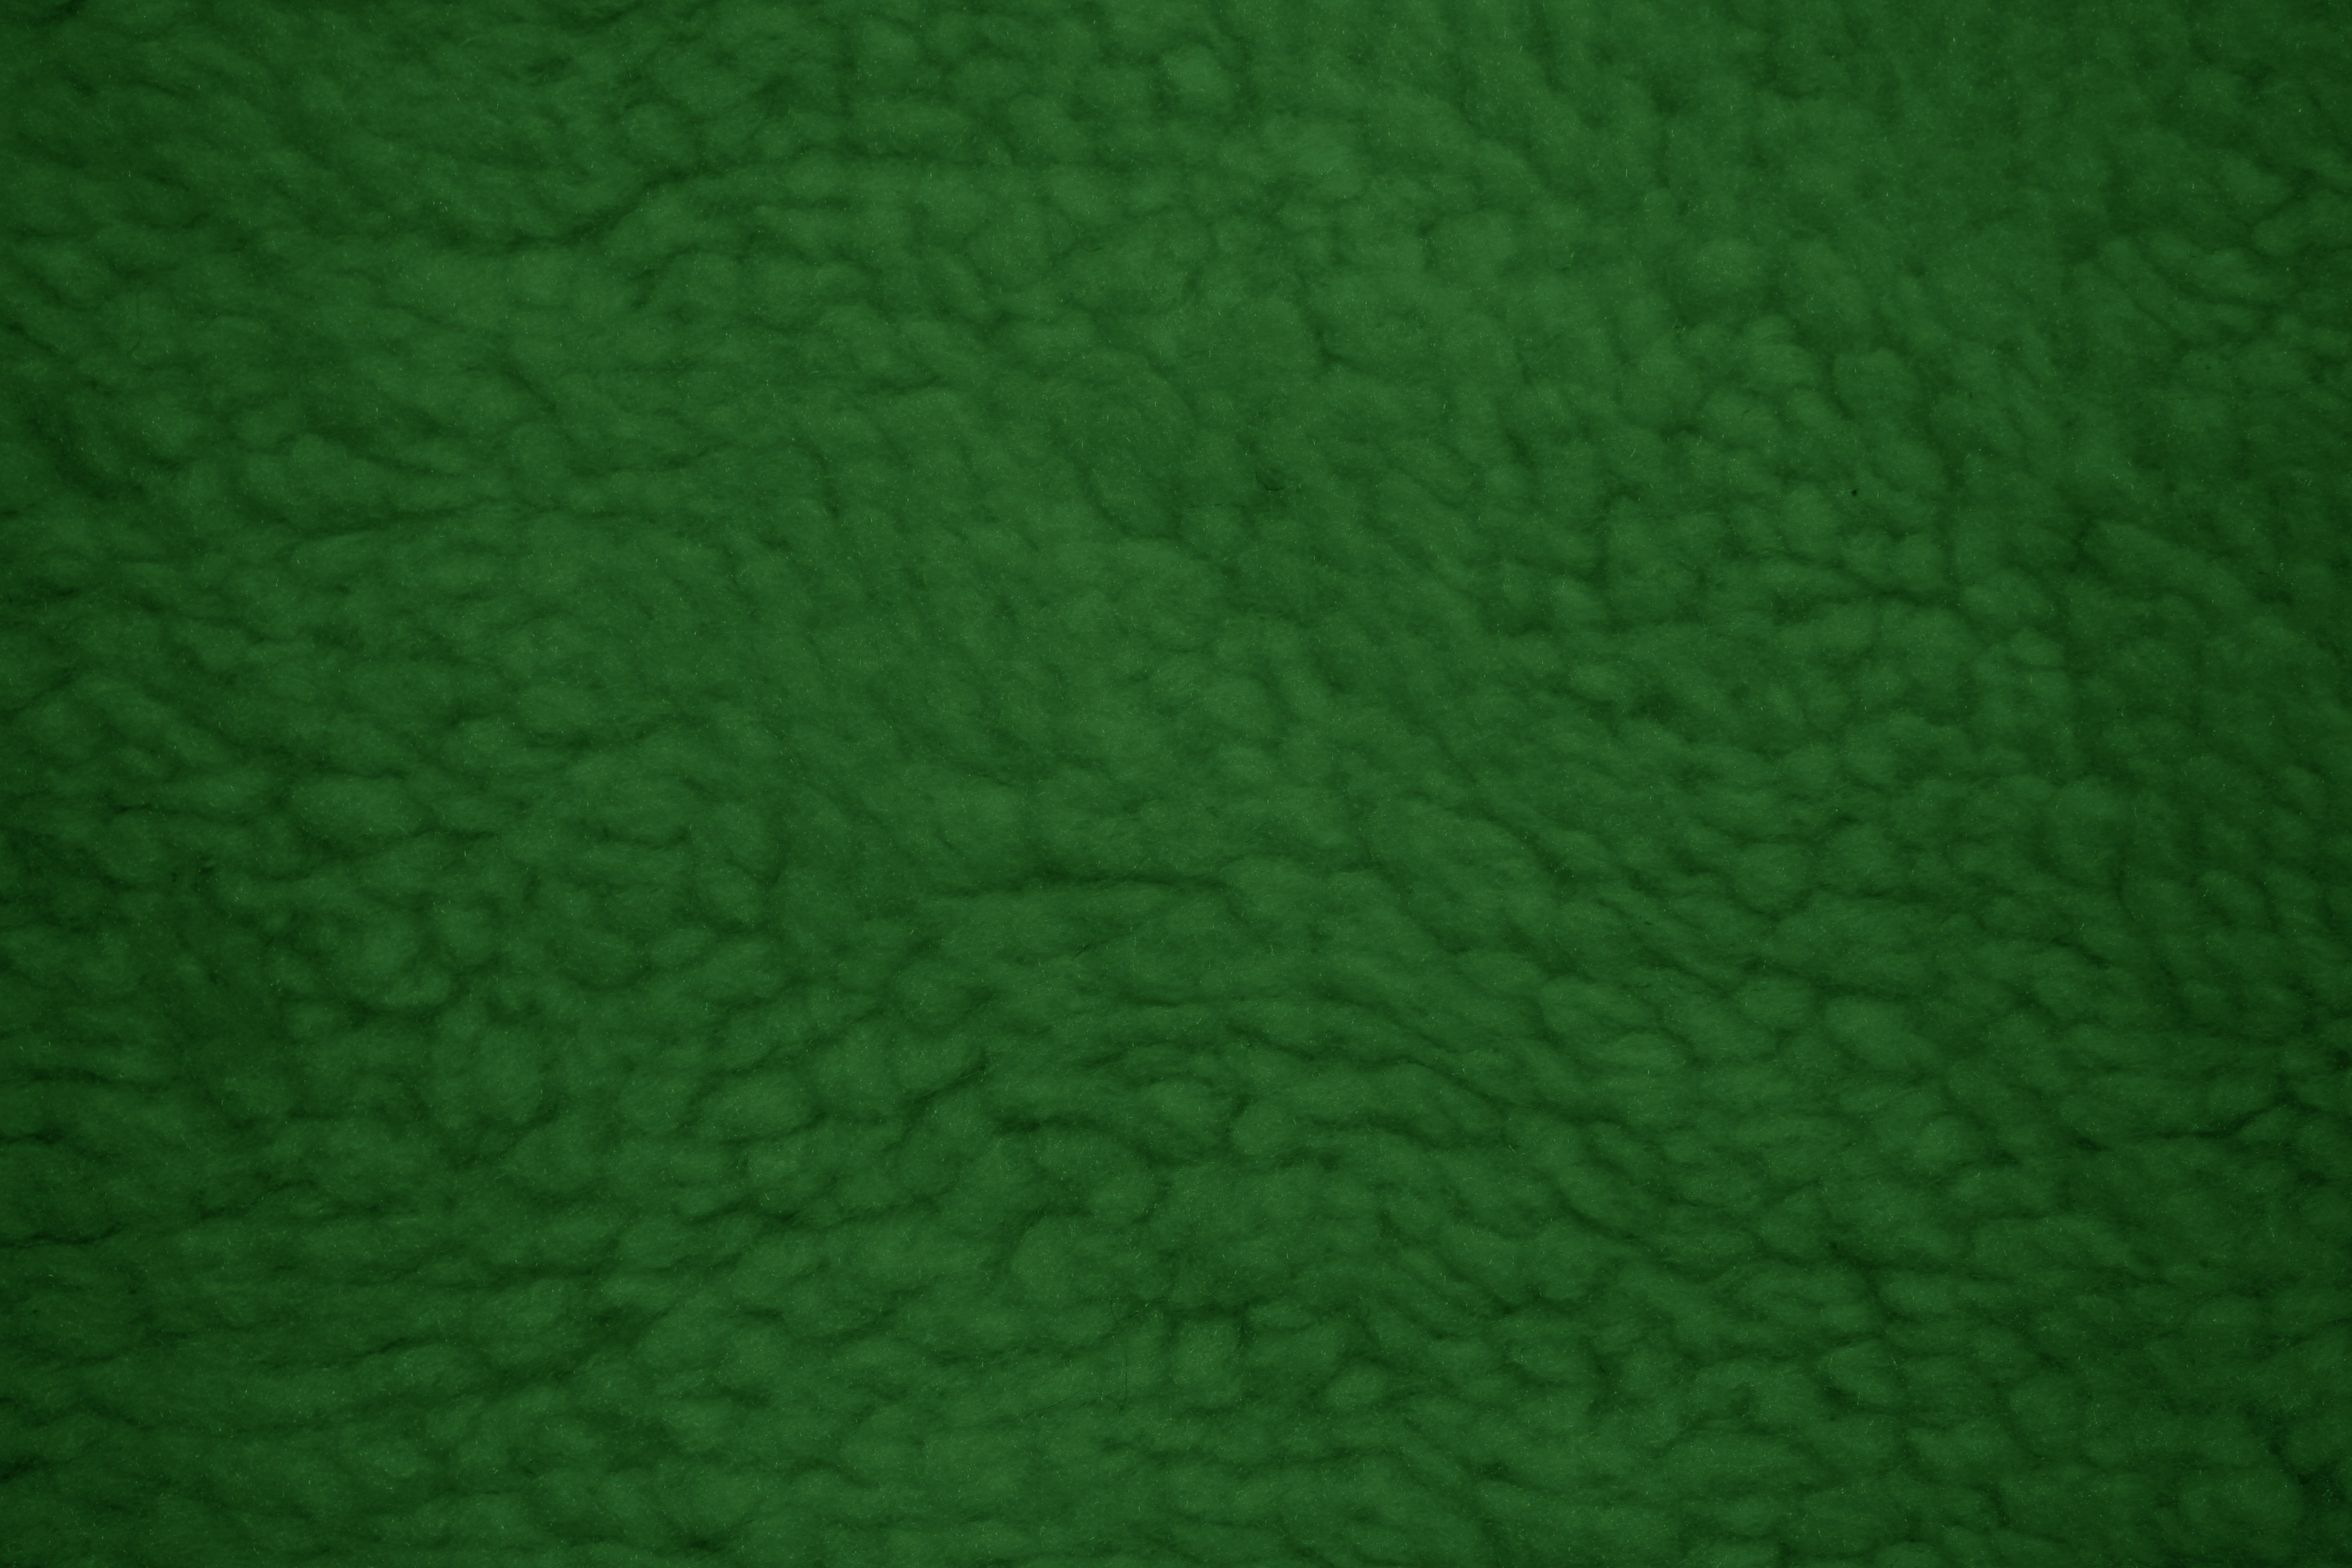 Forest green fleece faux sherpa wool fabric texture for Green fabric